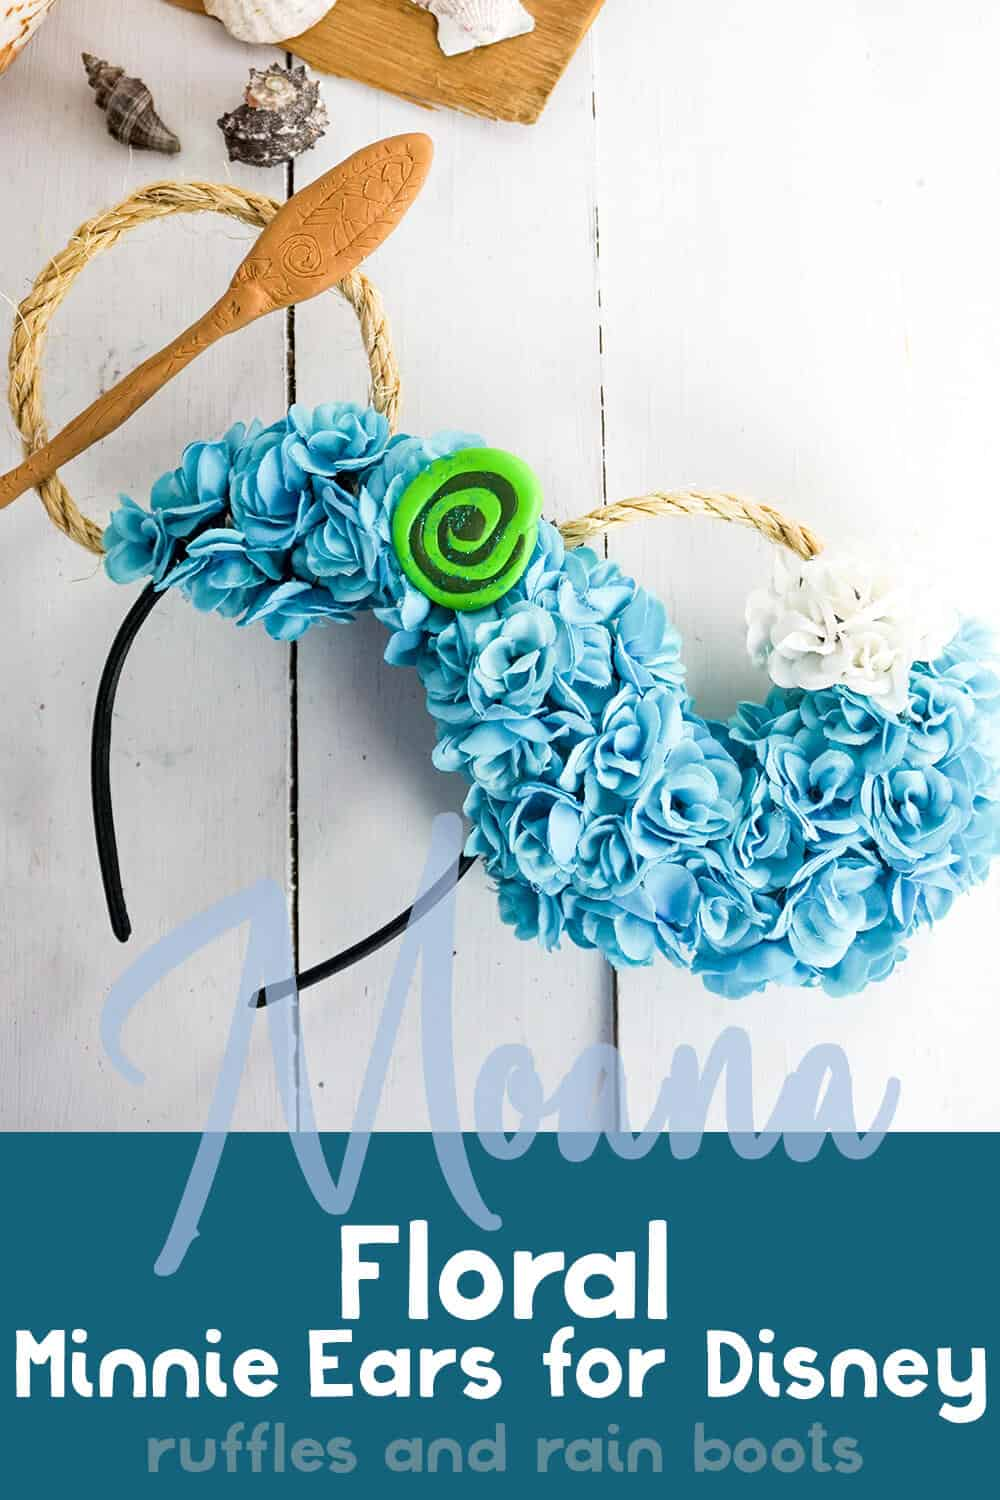 princesses of disney minnie ears on a white background with shells and driftwood with text which reads moana floral minnie ears for disney